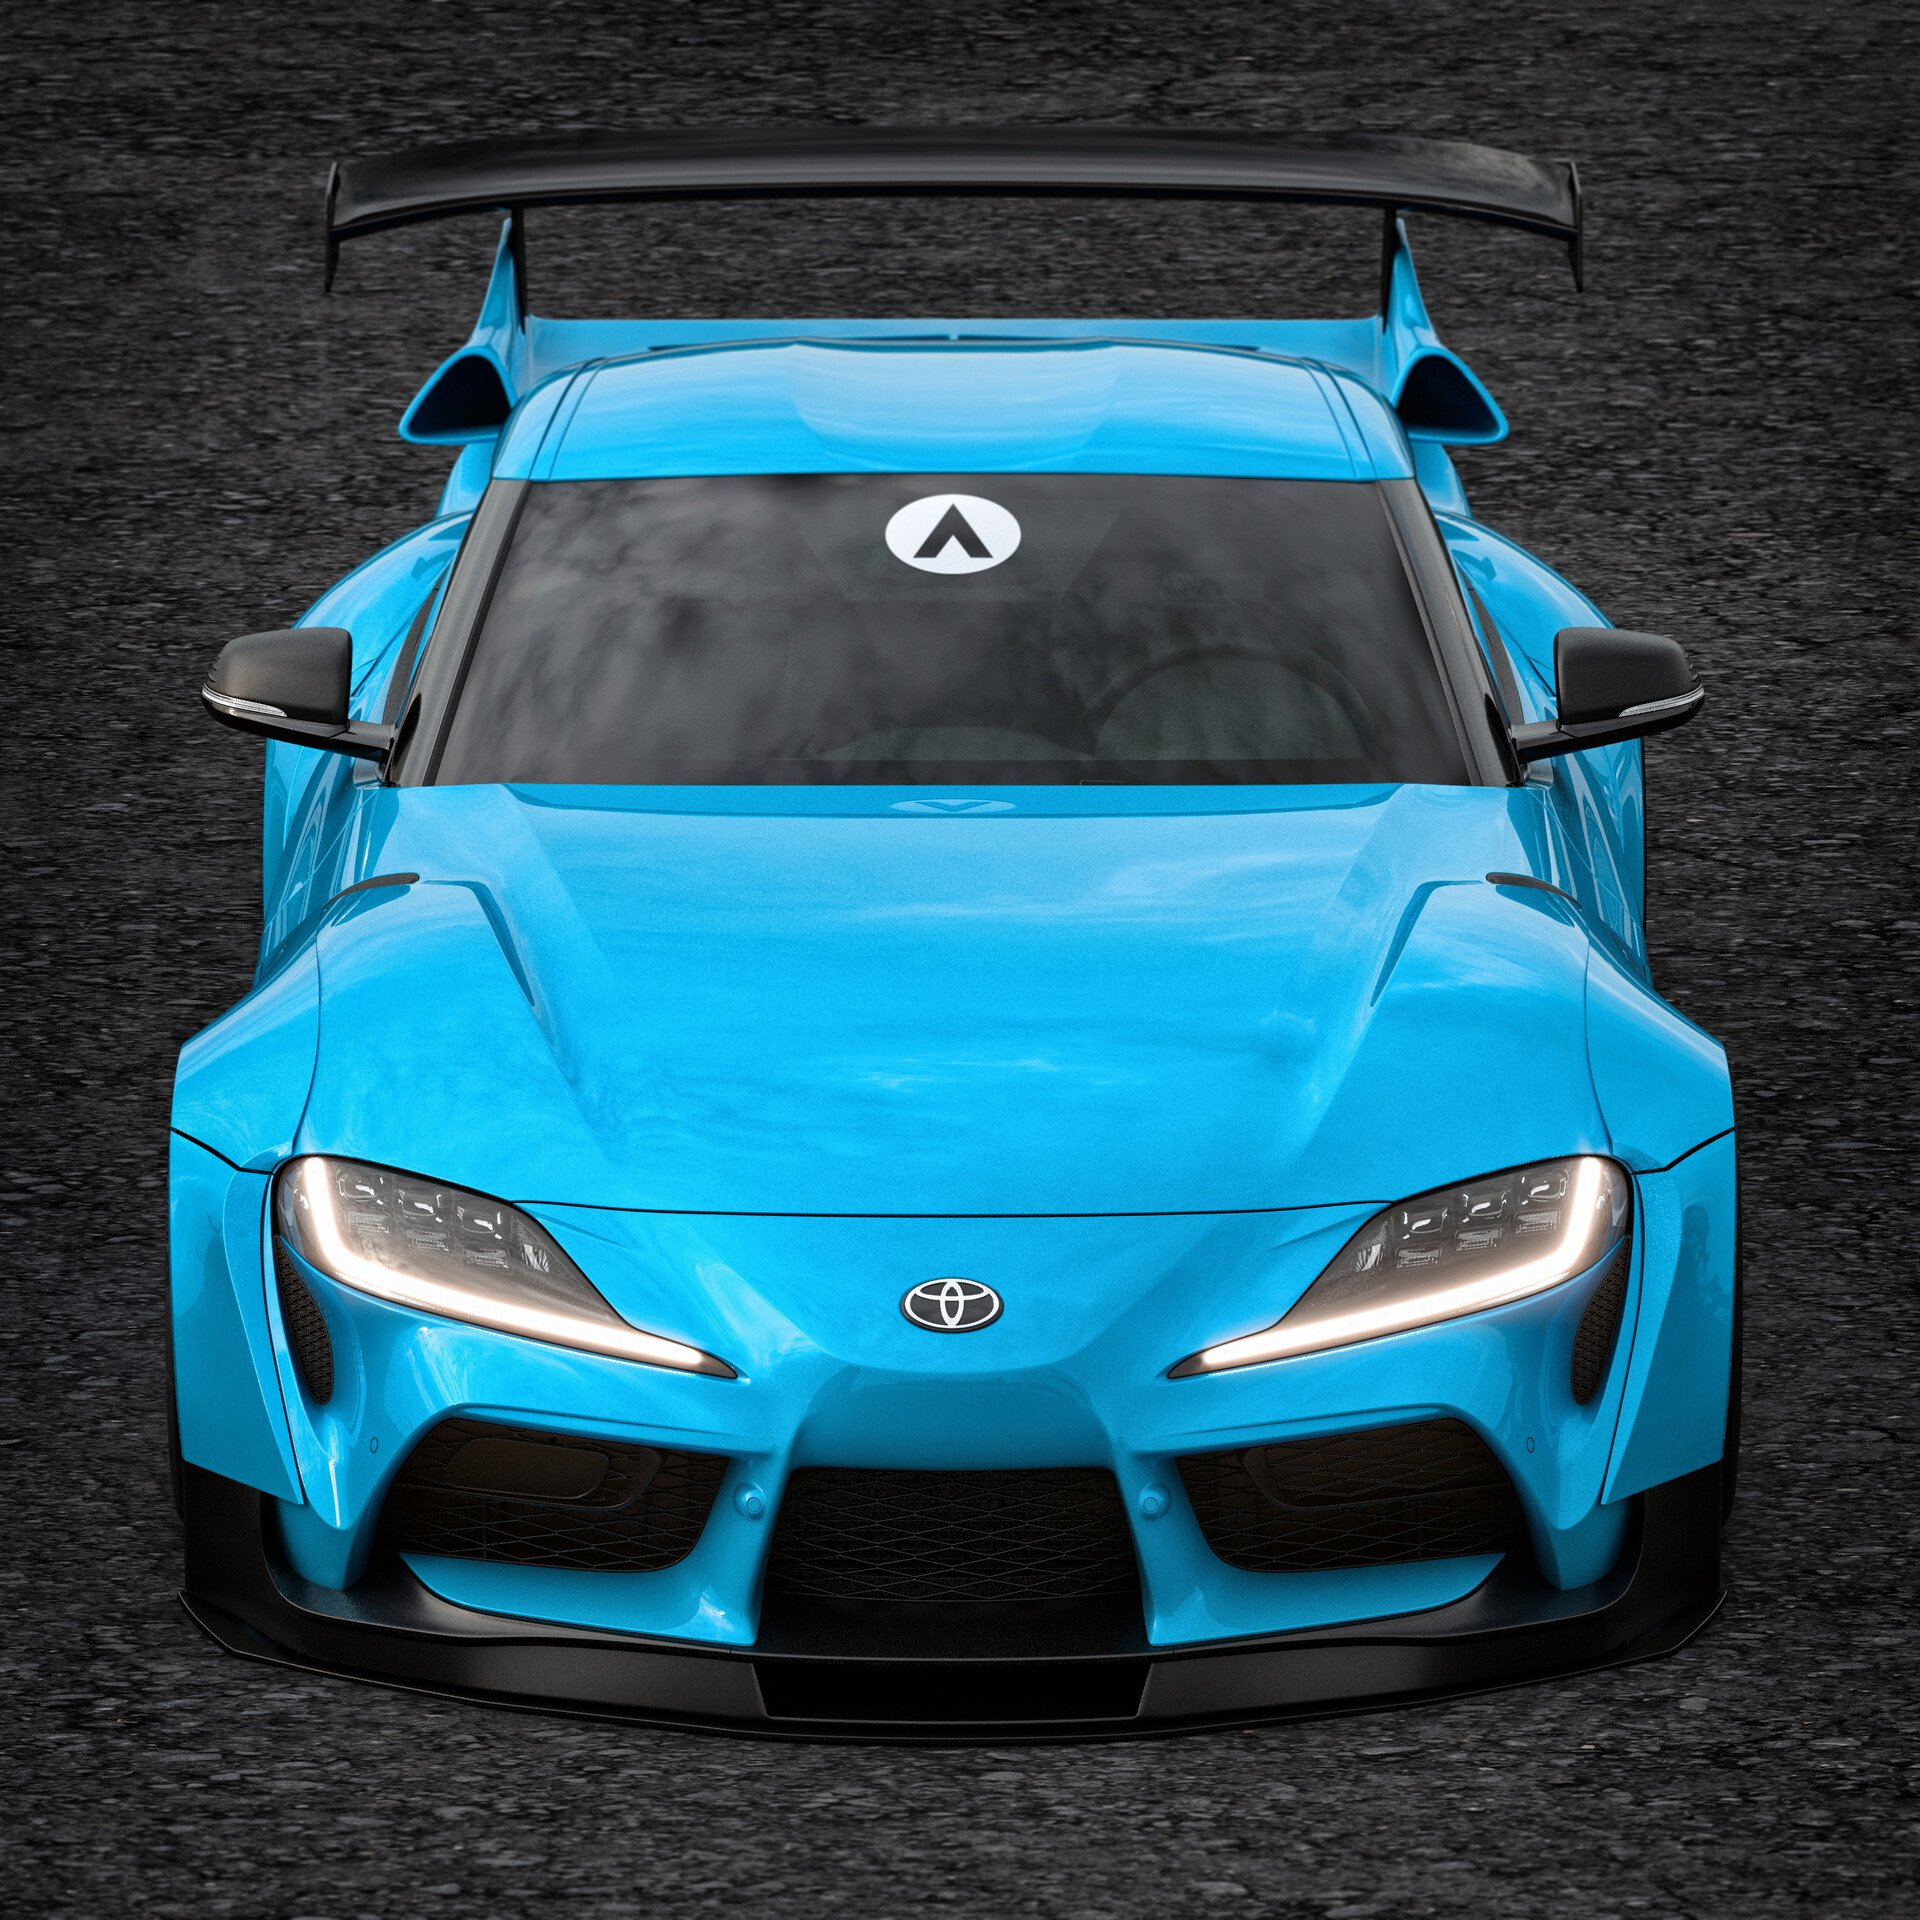 Toyota-Supra-Widebody-kit-renderings-4